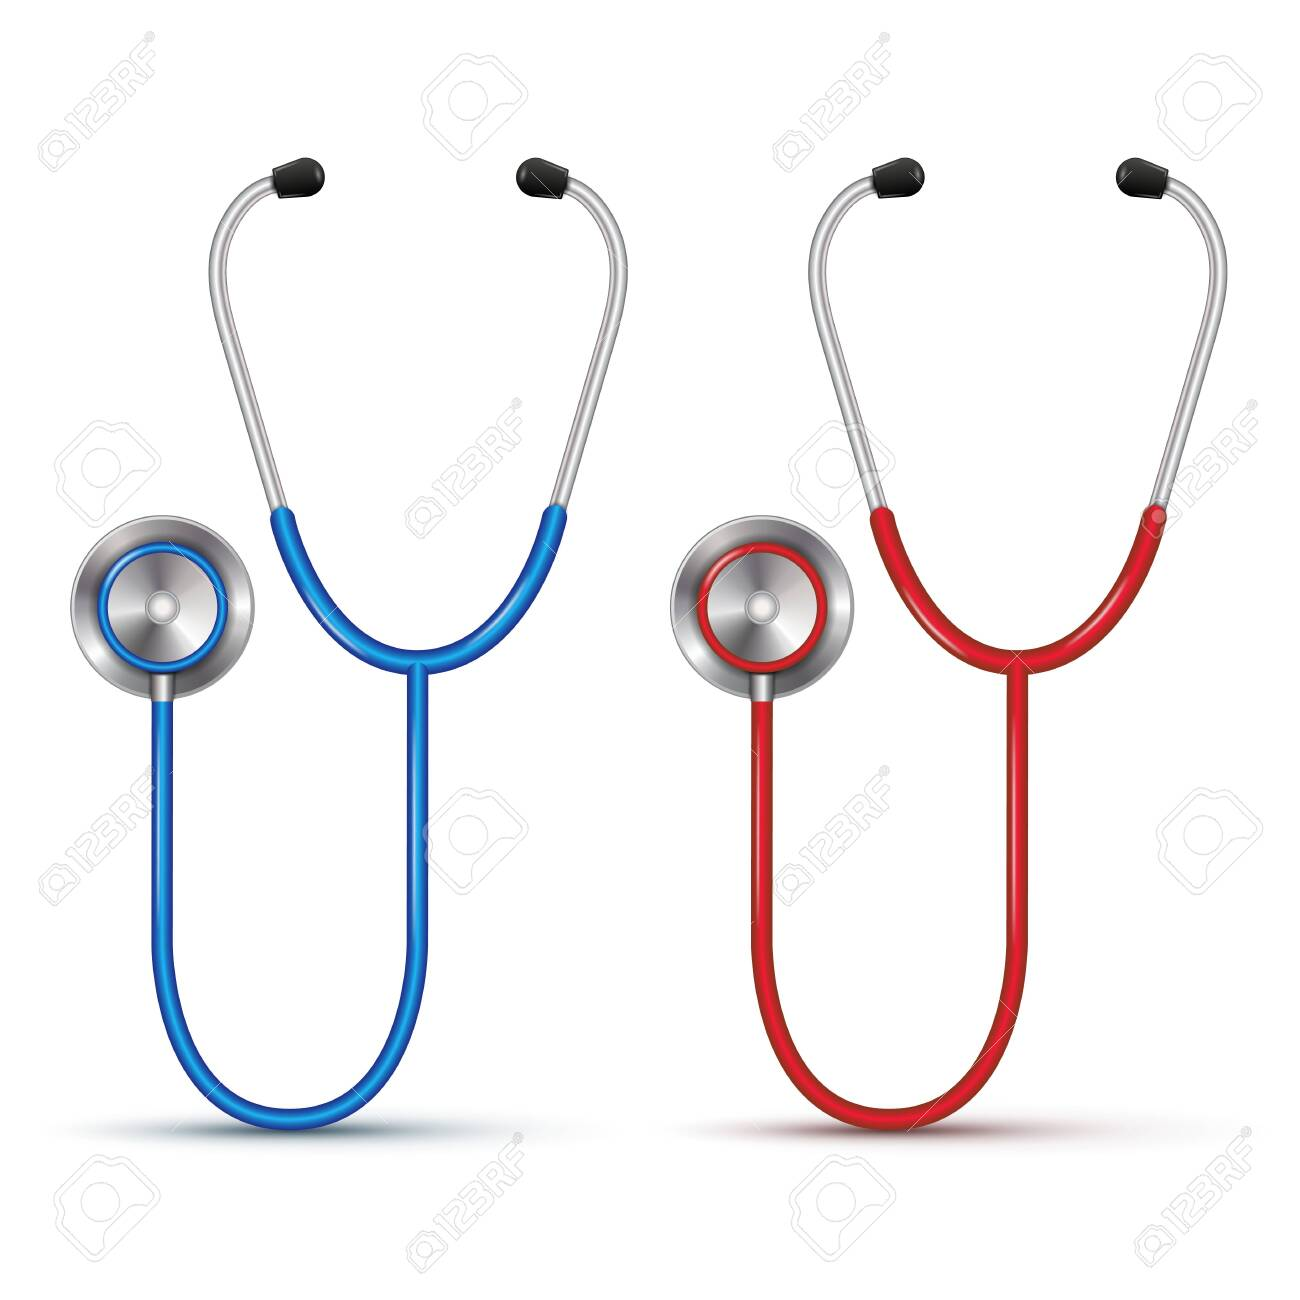 Realistic red and blue 3d stethoscope isolated on white background. Vector illustration - 145295740